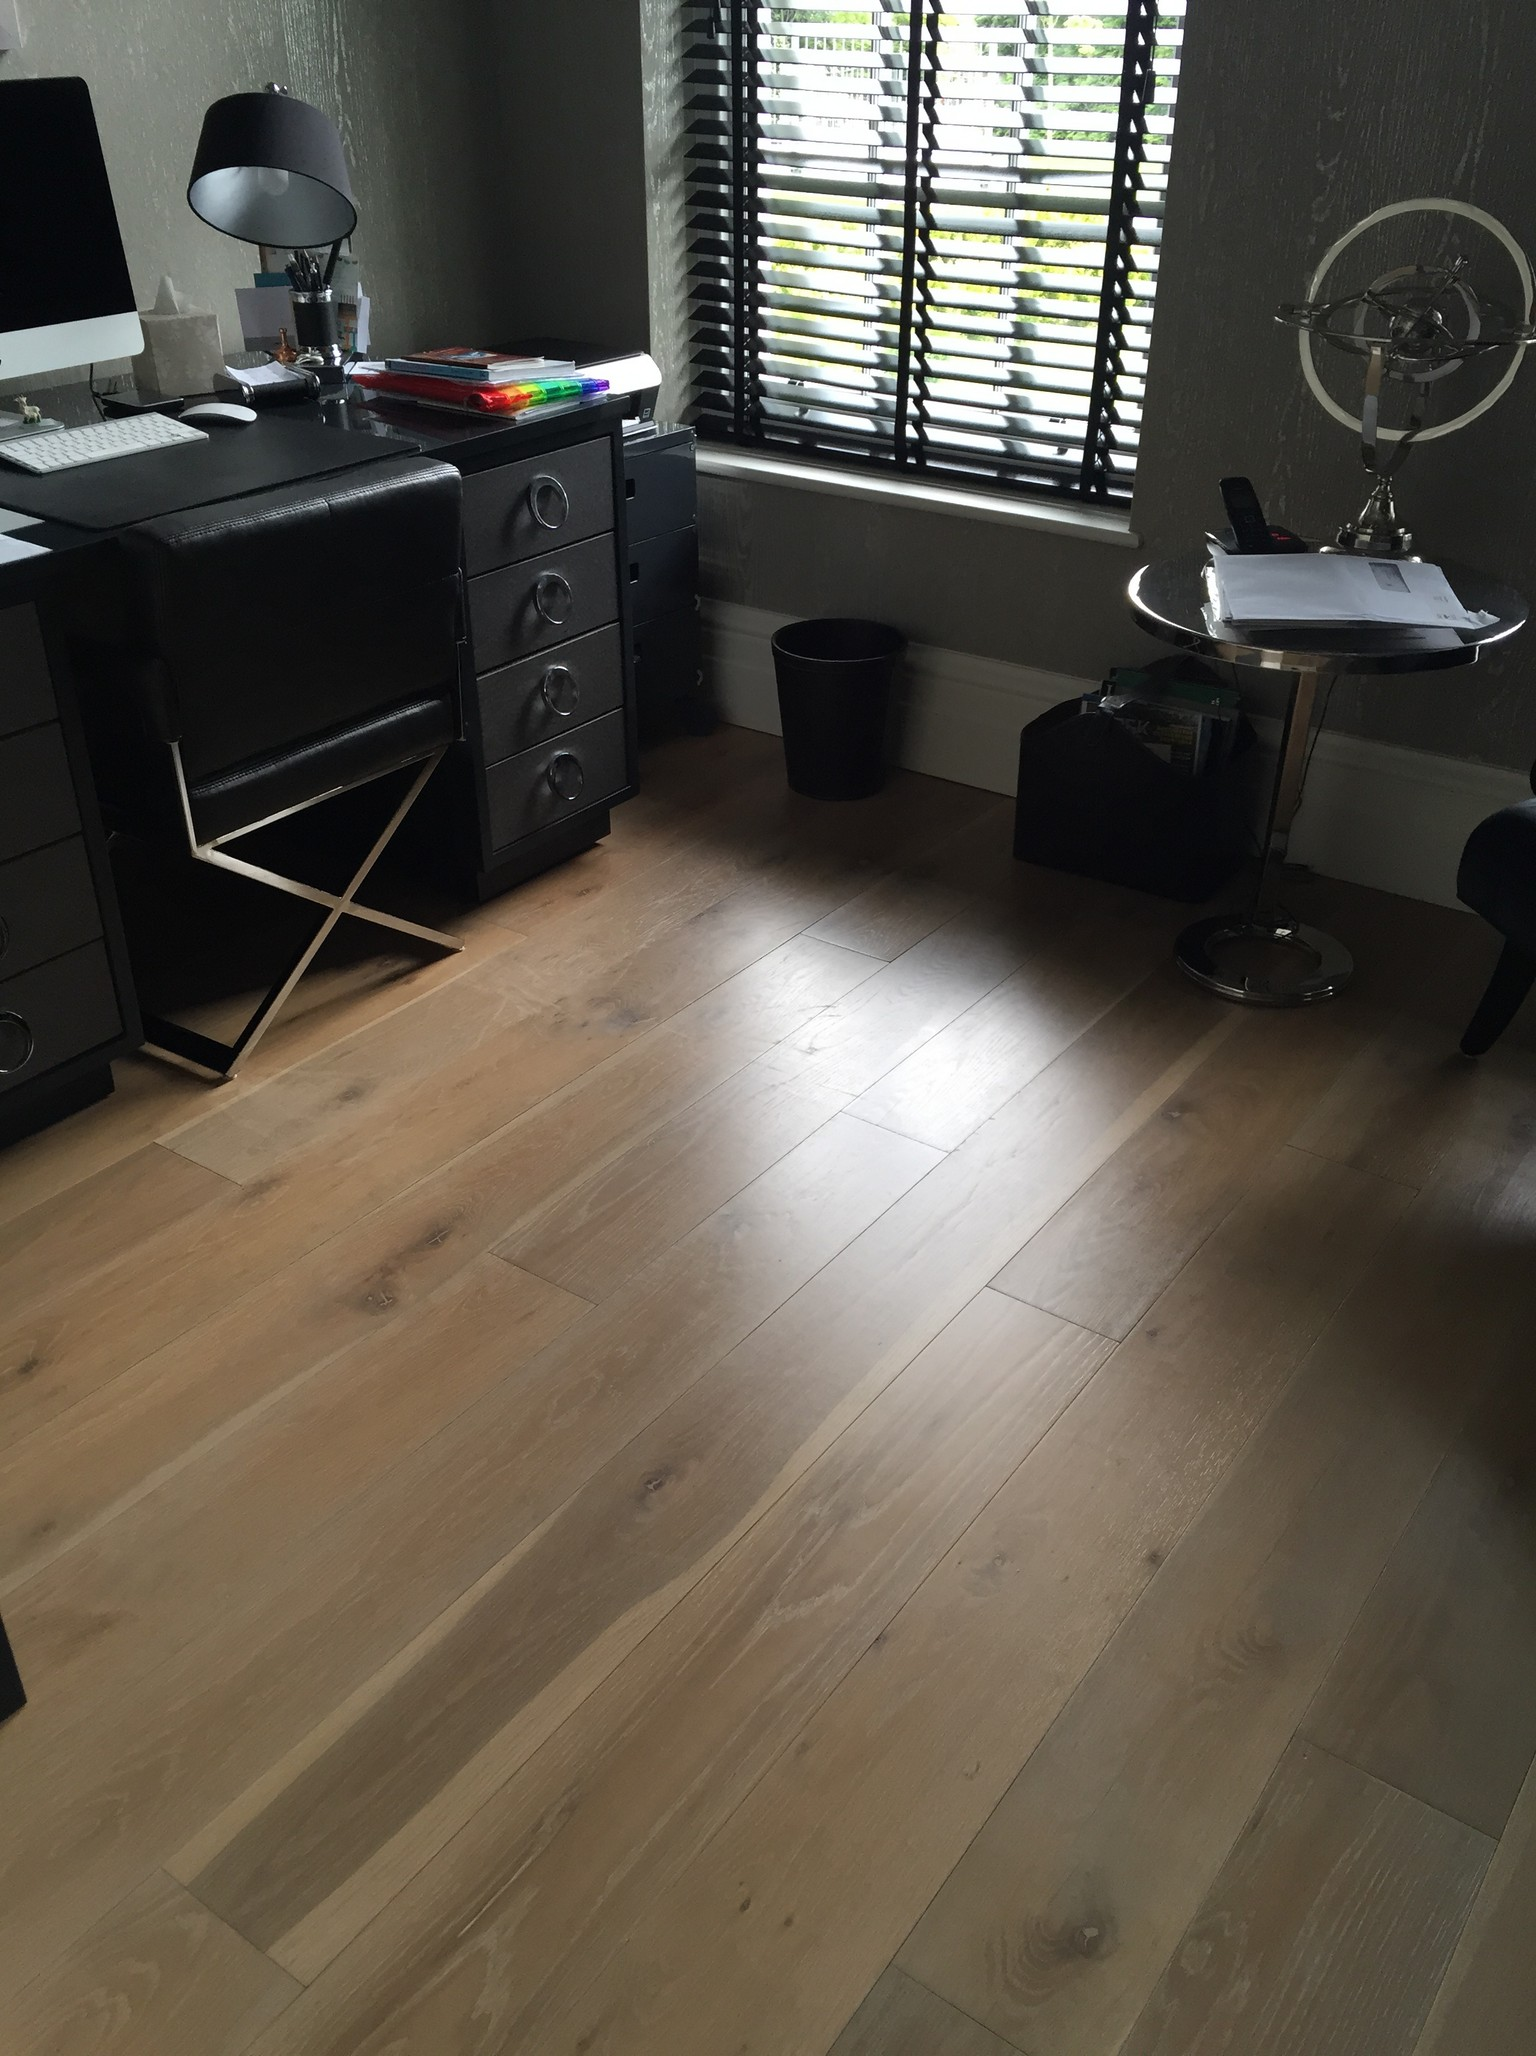 smoked engineered wood flooring in home office